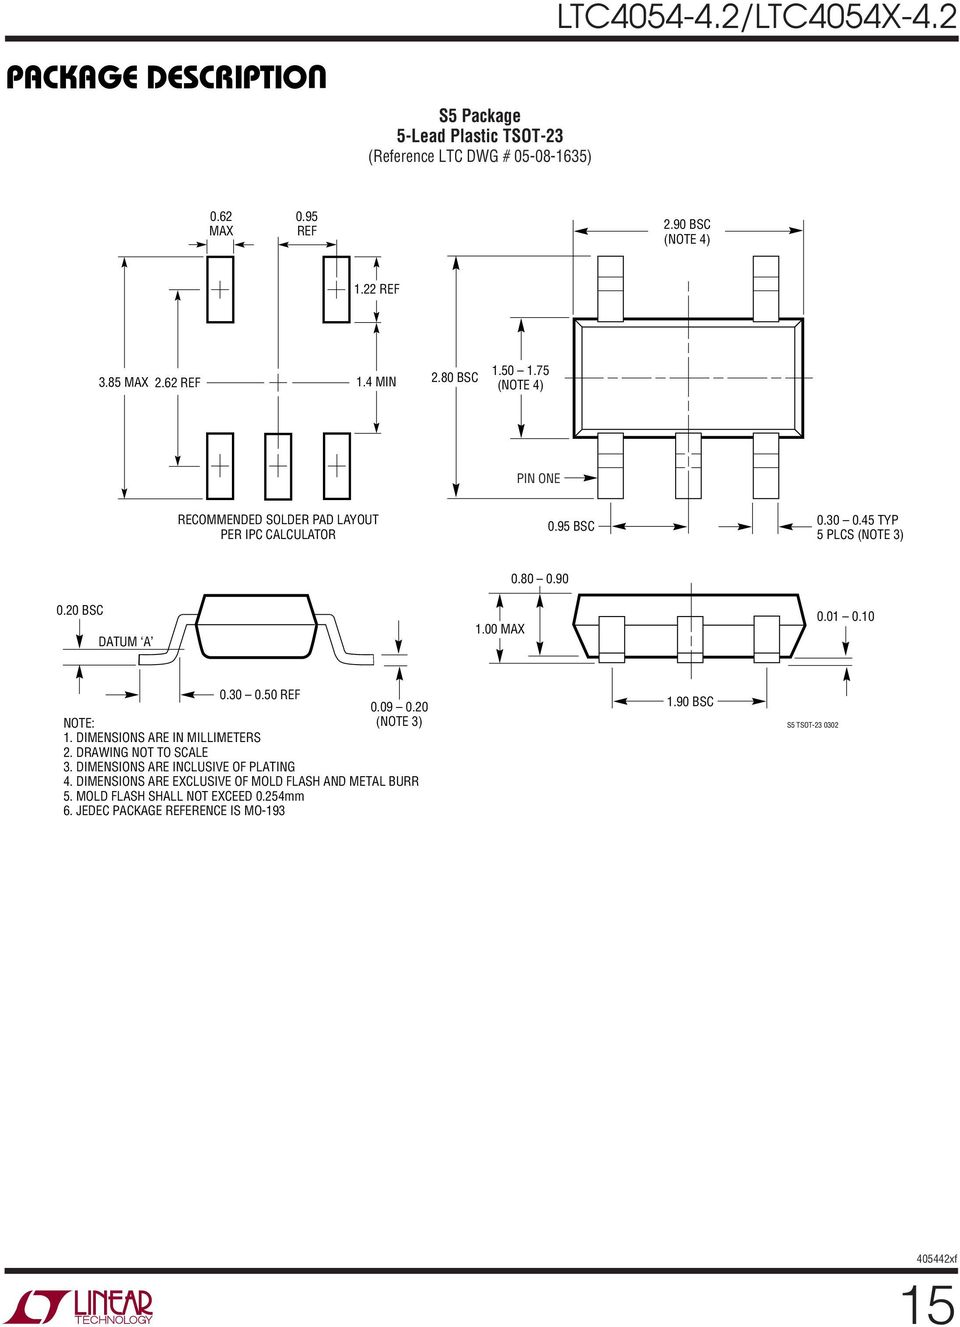 Features Descriptio Applicatio S Ltc Ltc4054x 42 Standalone Ltc4425 Linear Supercap Charger Electronc Circuit Diagram Max113 Ref92 19 Bsc Note 3